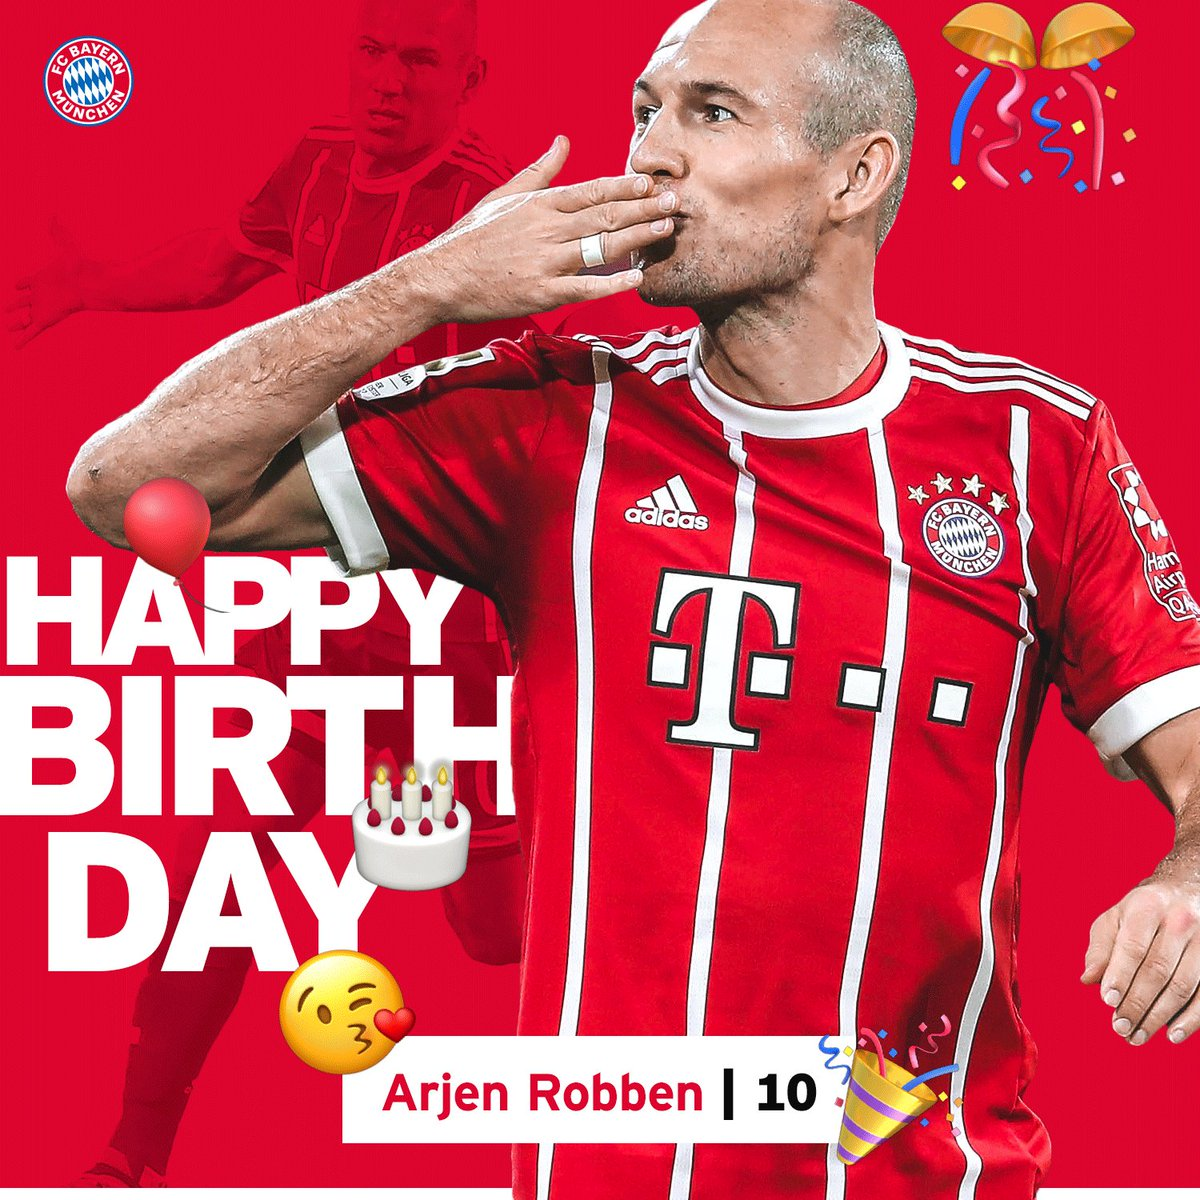 RT @FCBayernEN: Happy birthday to our one and only @ArjenRobben! 🎊🎉🎁 #MiaSanMia https://t.co/LstxtQE4zw